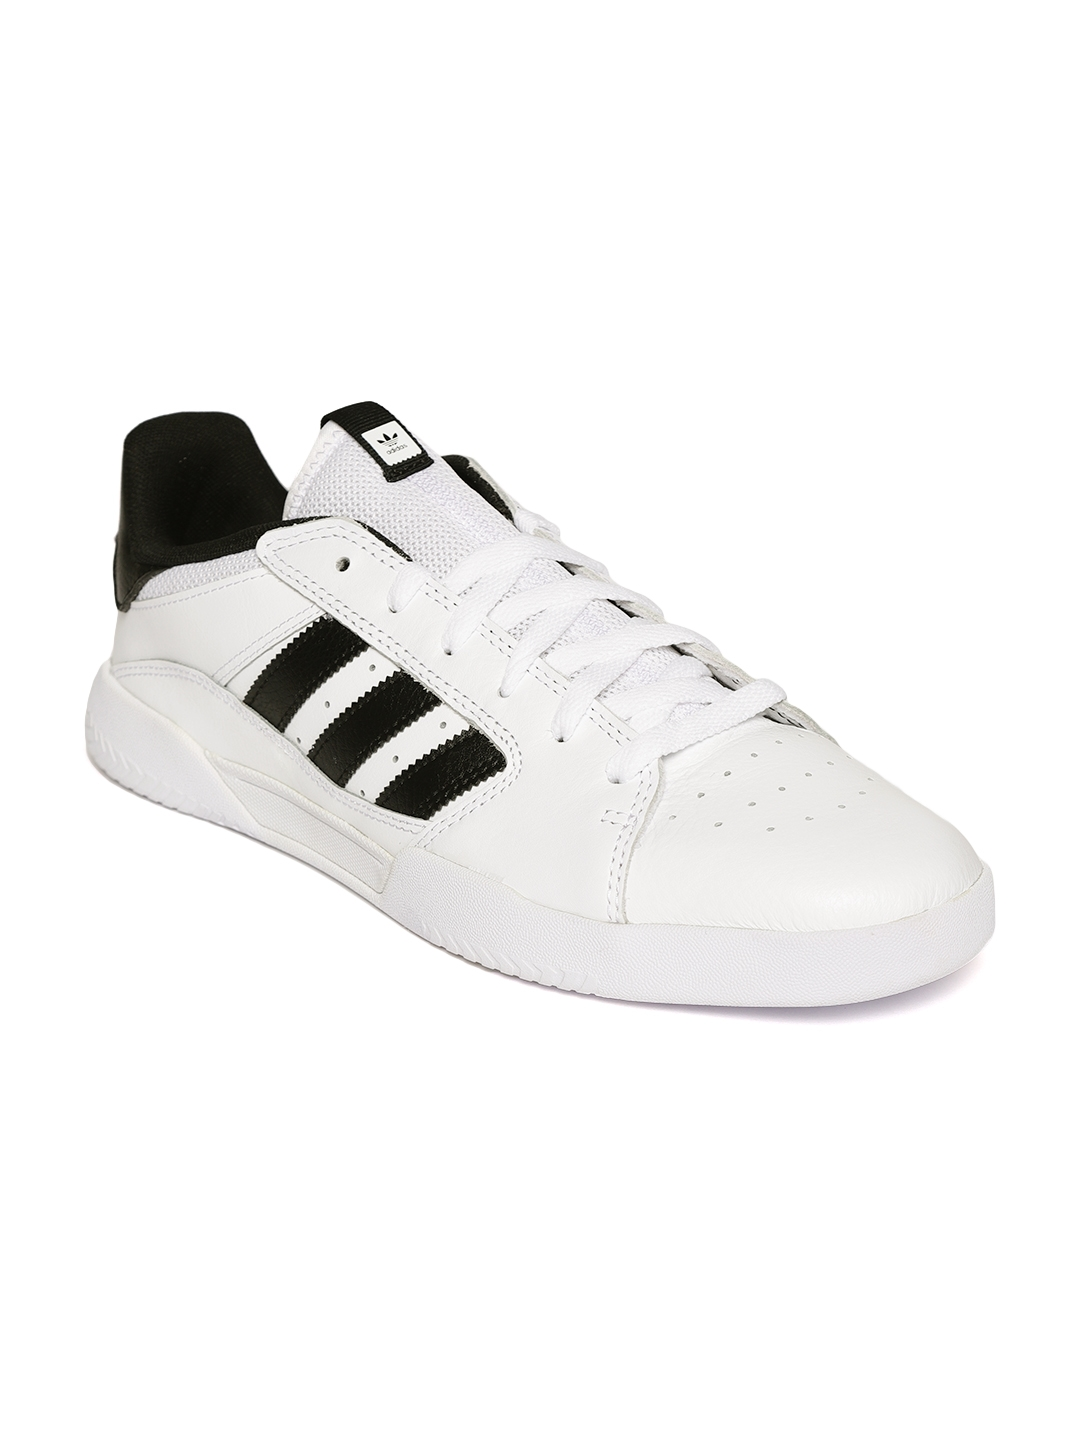 6cd315bd5ec1 Buy ADIDAS Originals Men White VRX Low Leather Sneakers - Casual ...